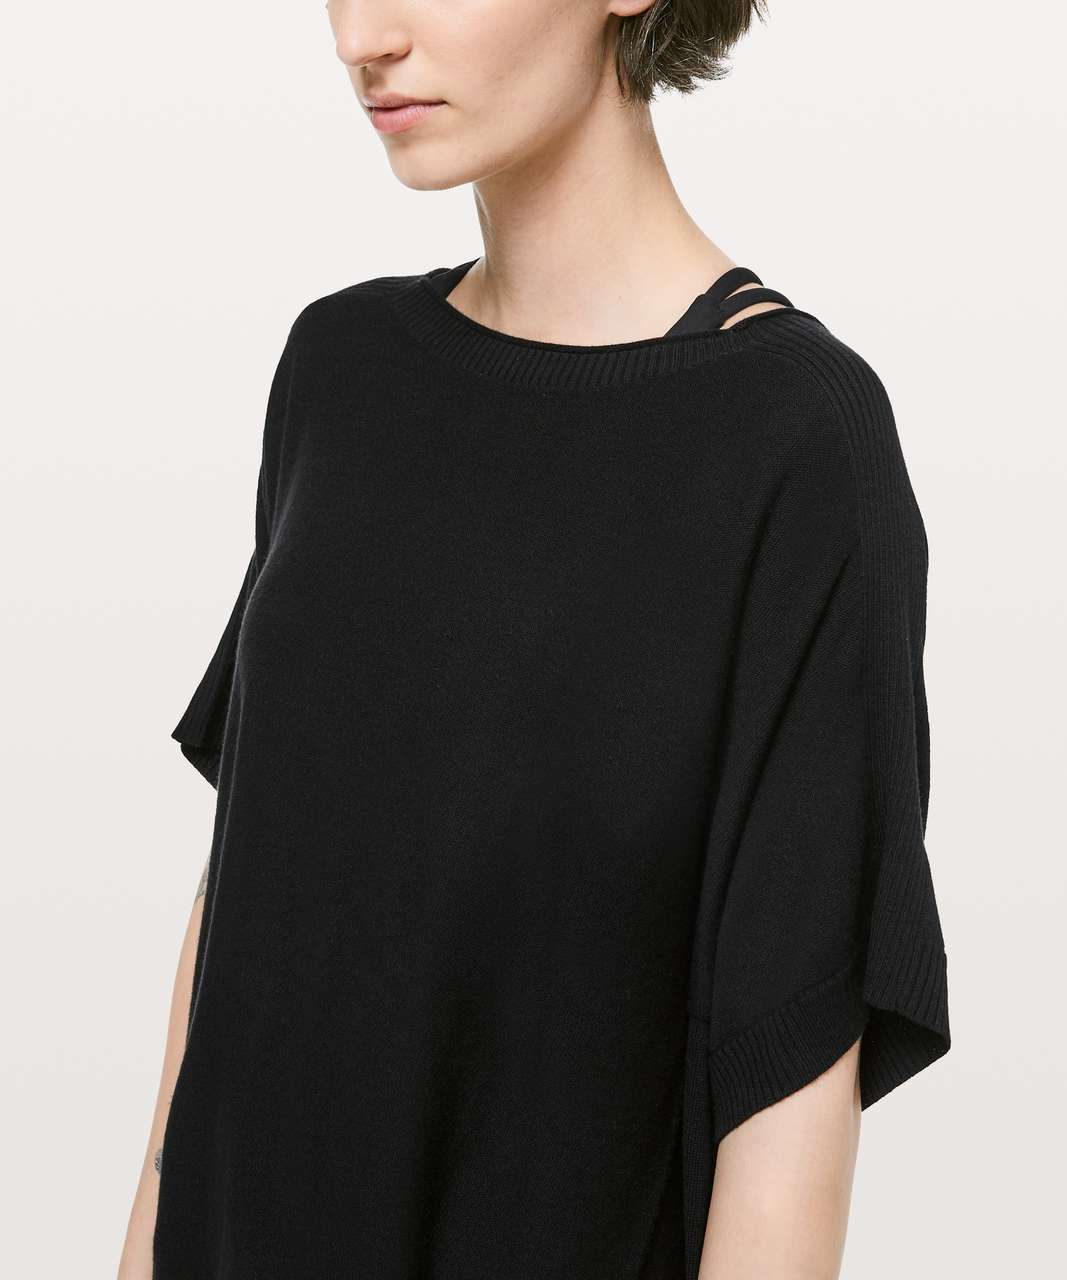 Lululemon Be At Ease Poncho - Black